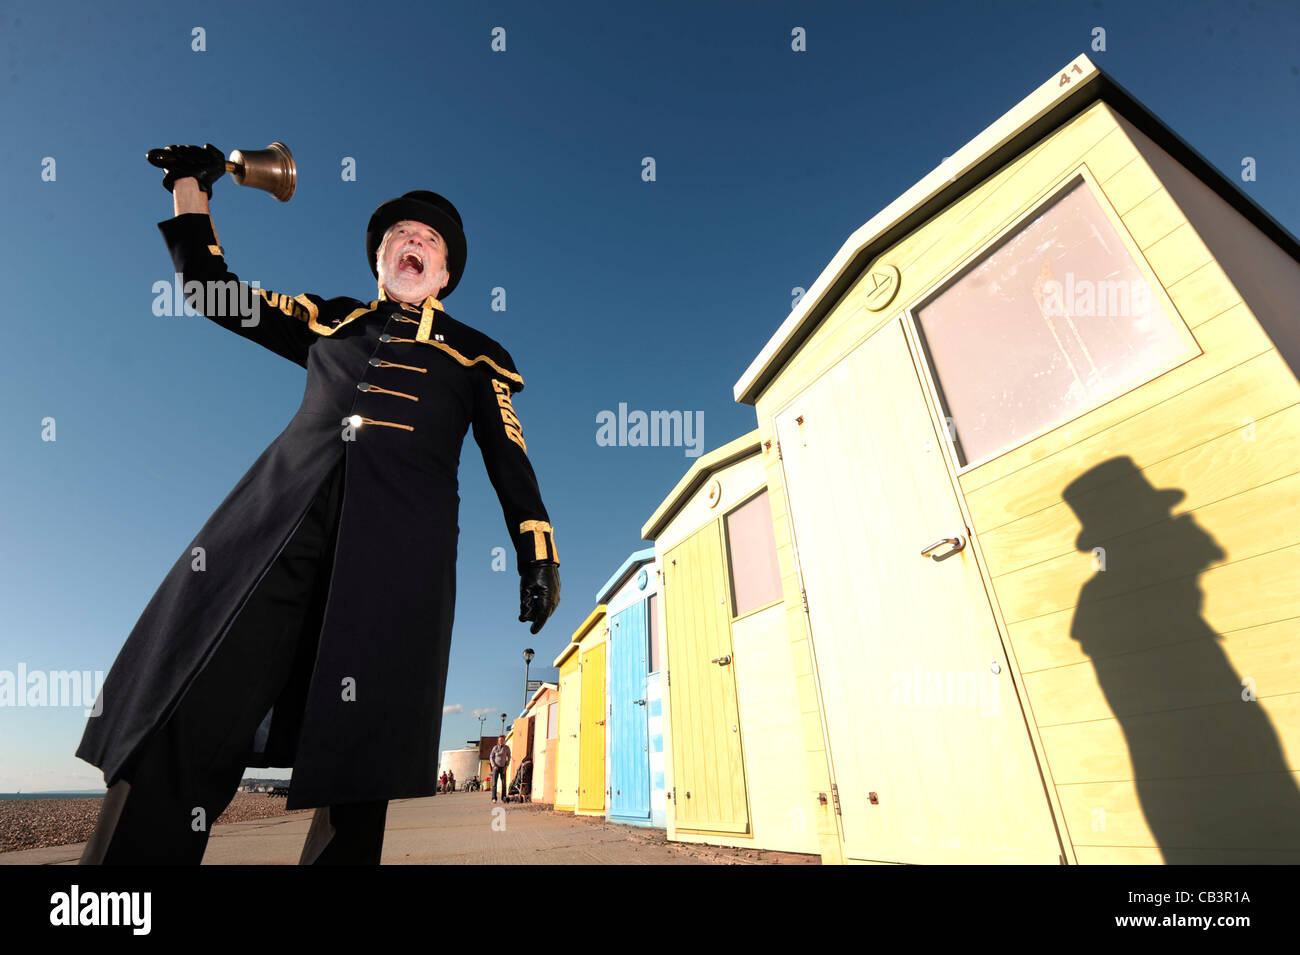 Town Crier, Seaford, East Sussex - Stock Image